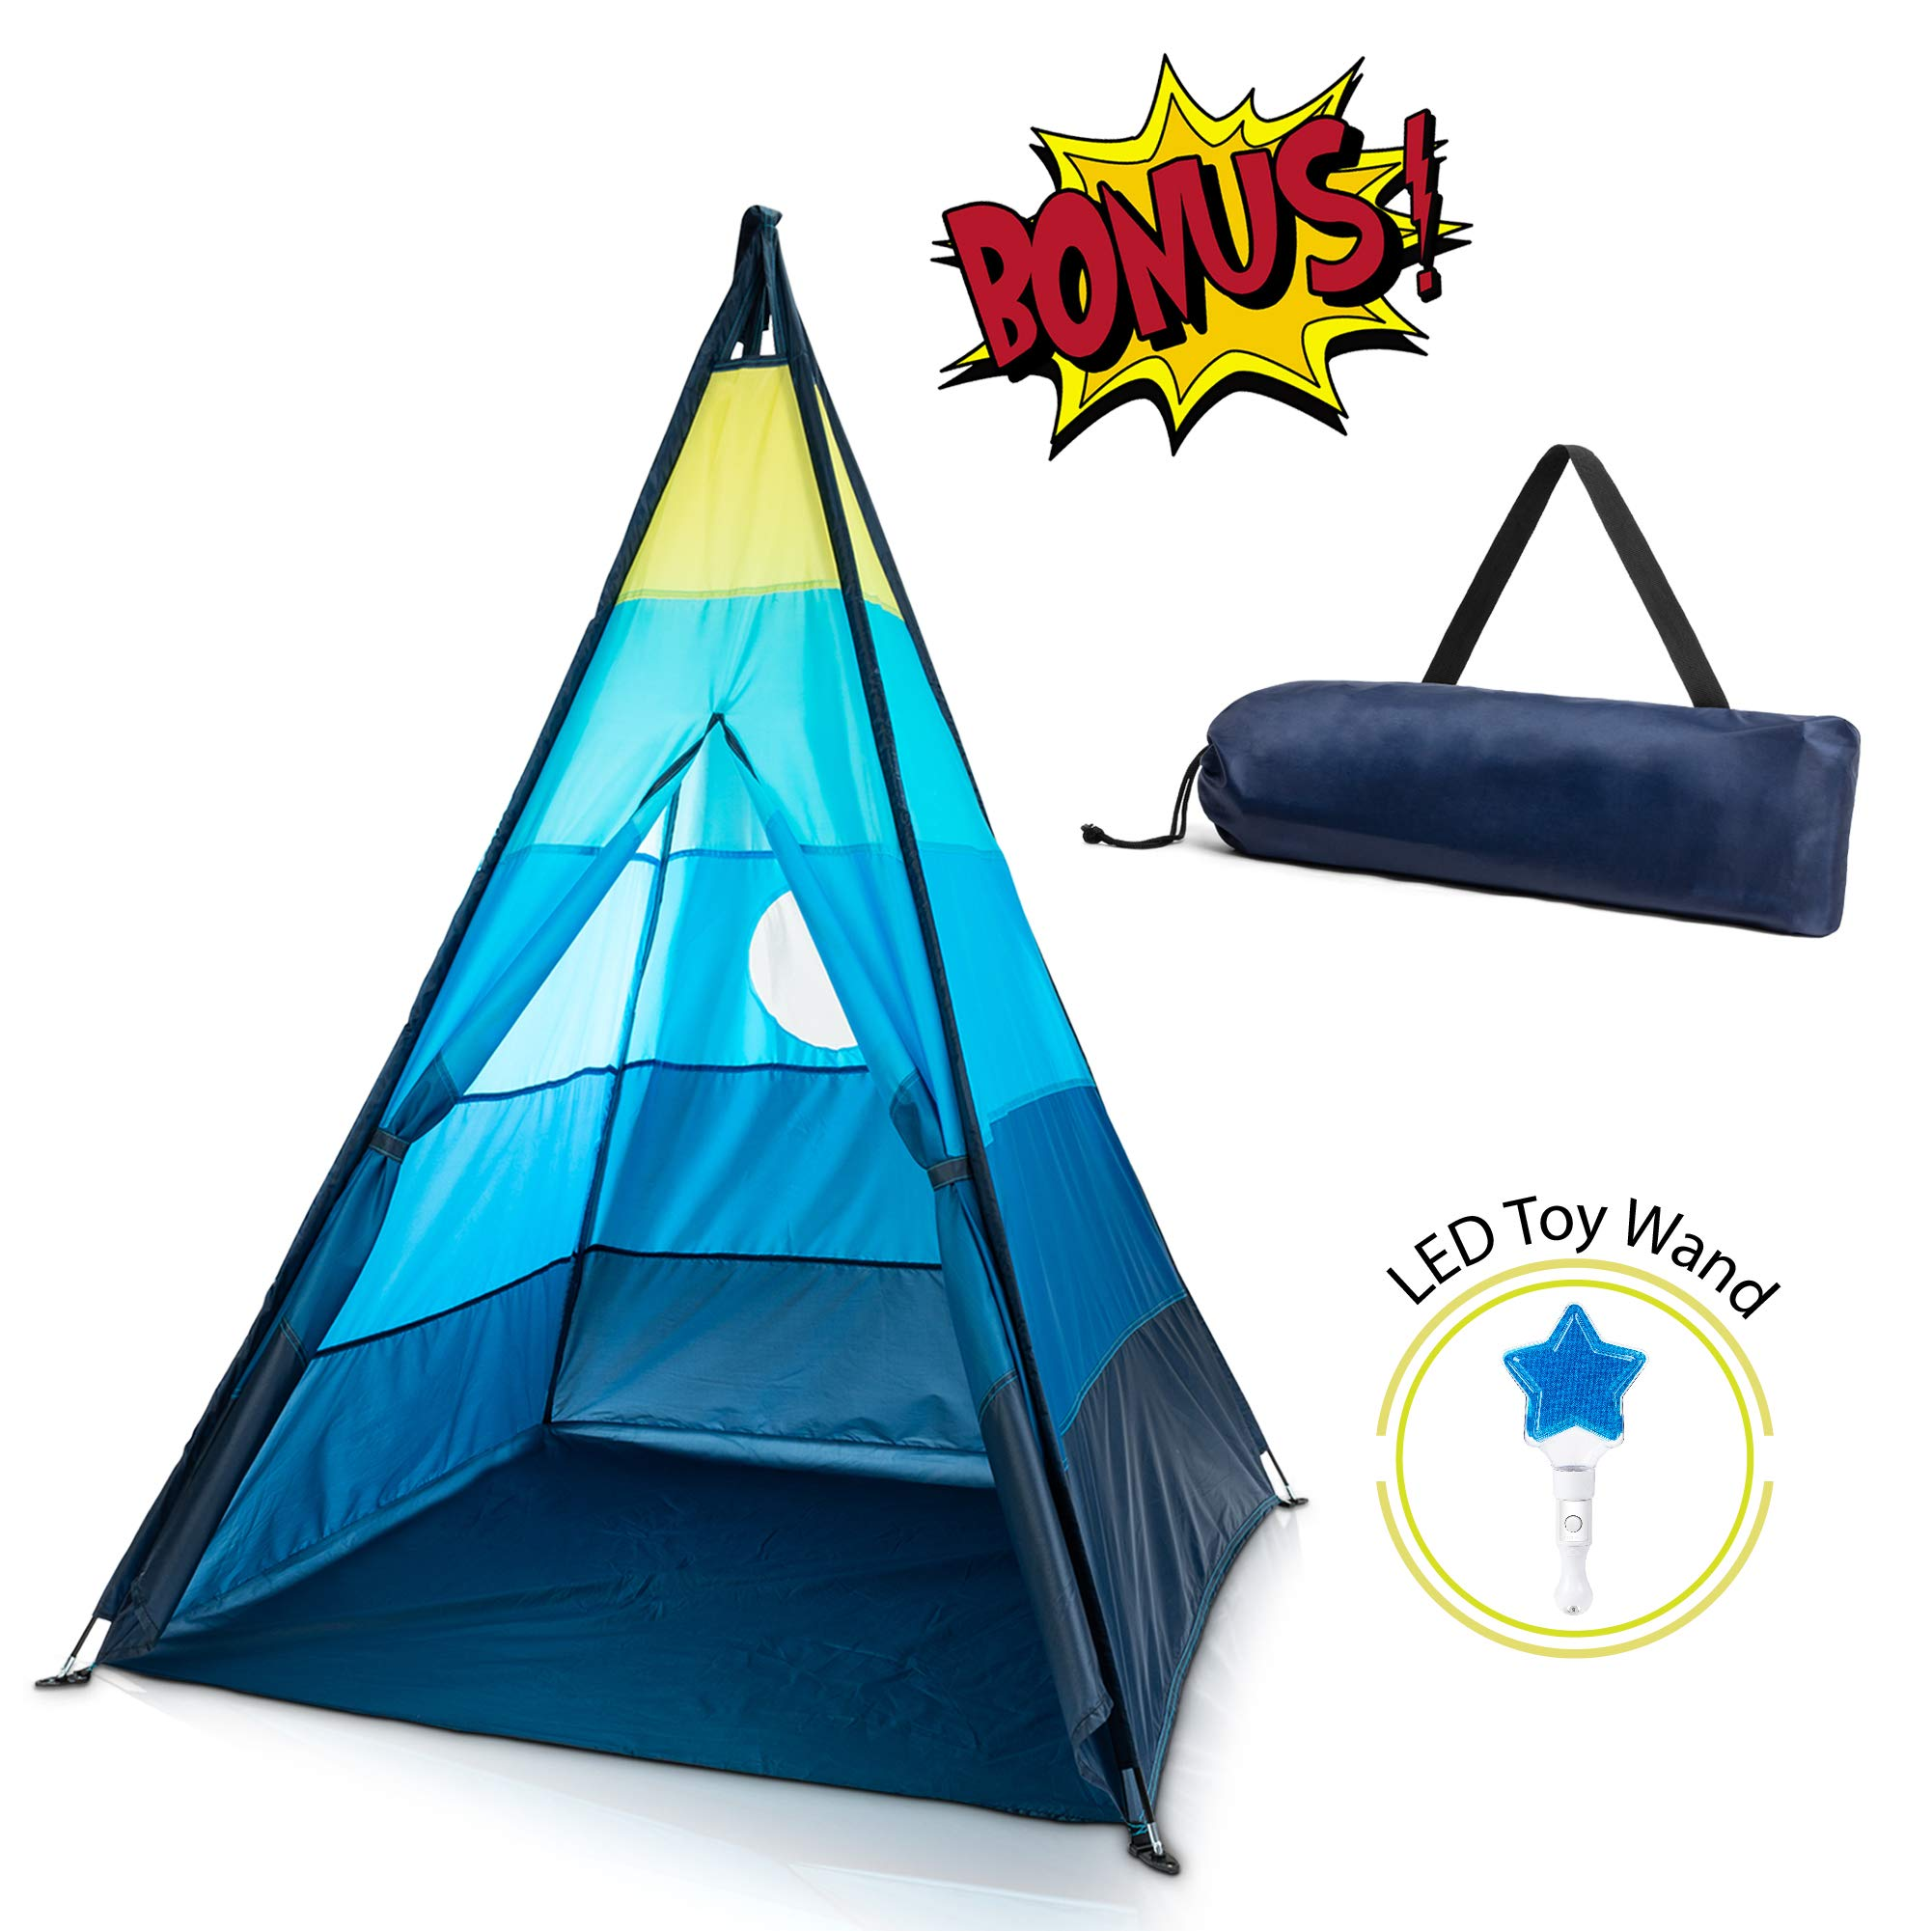 GiddyGo Kids Teepee Play Tent: Kid Teepee Tent for Boys or Girls with Easy 4 Pole Assembly, Skylight, Window, Carry Case and LED Light Wand Toy - Indoor / Outdoor Teepee Tents for a Toddler or Child